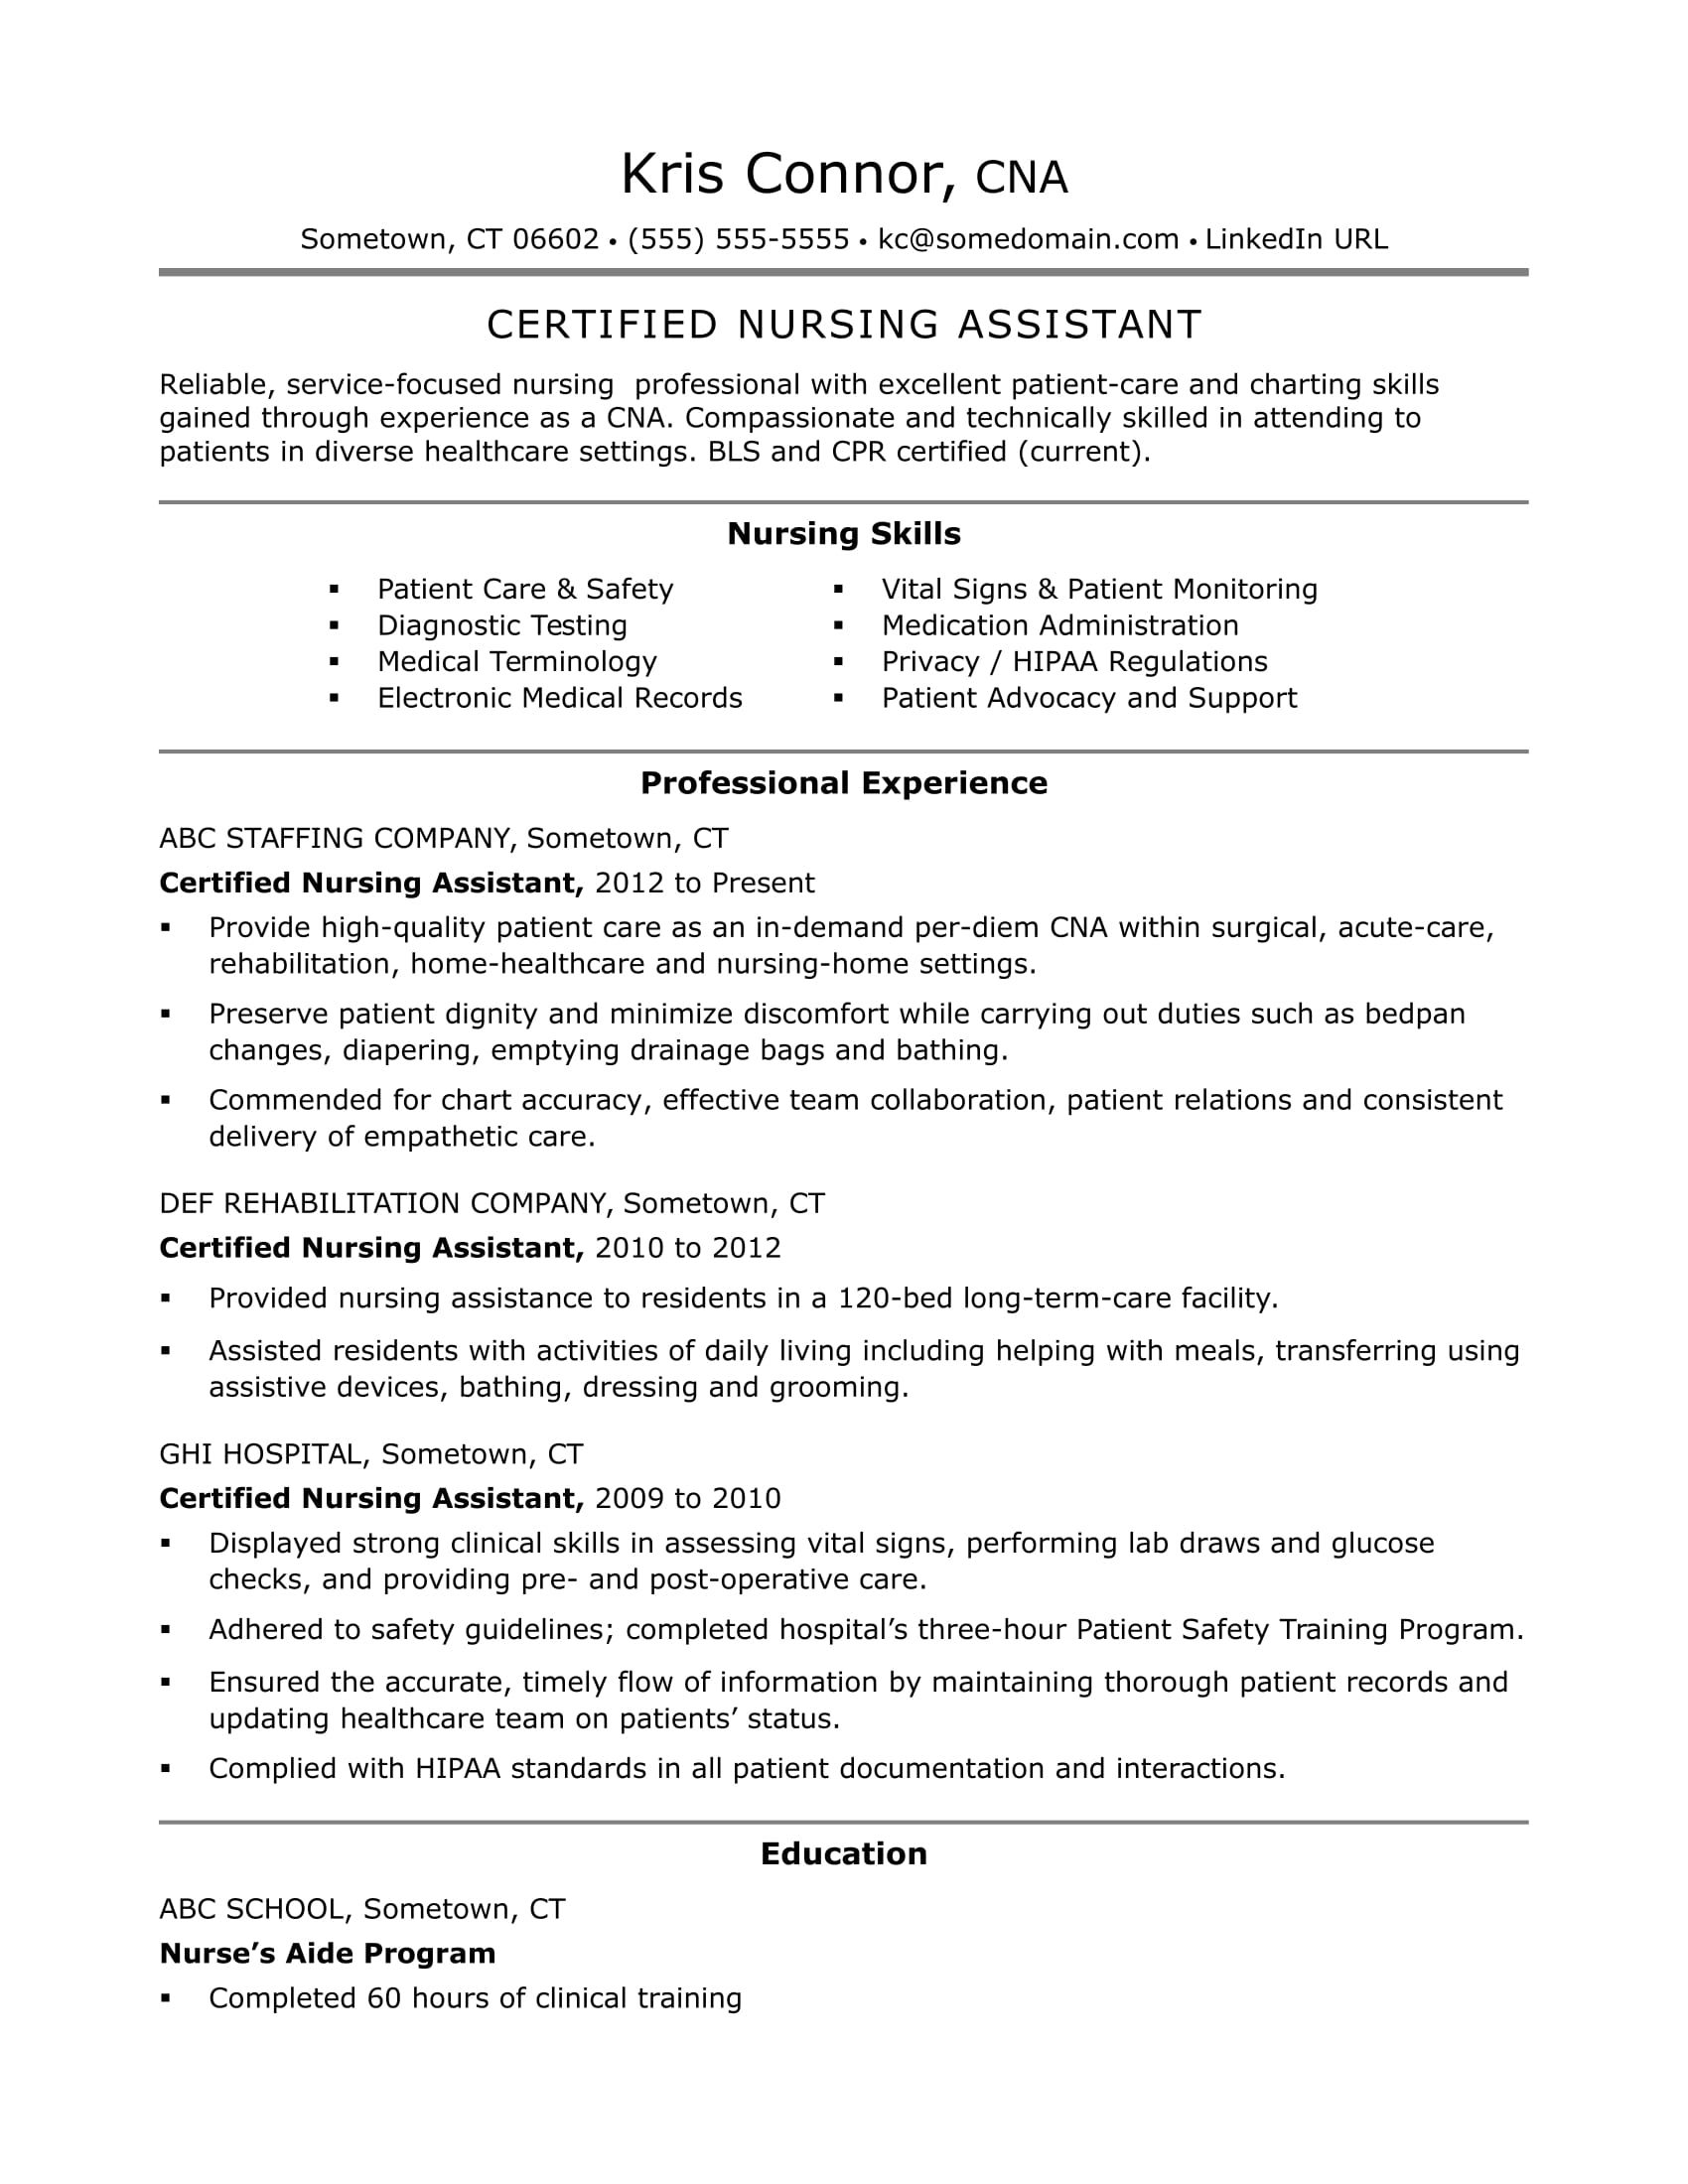 Cna resume examples skills for cnas monster cna resume example xflitez Gallery